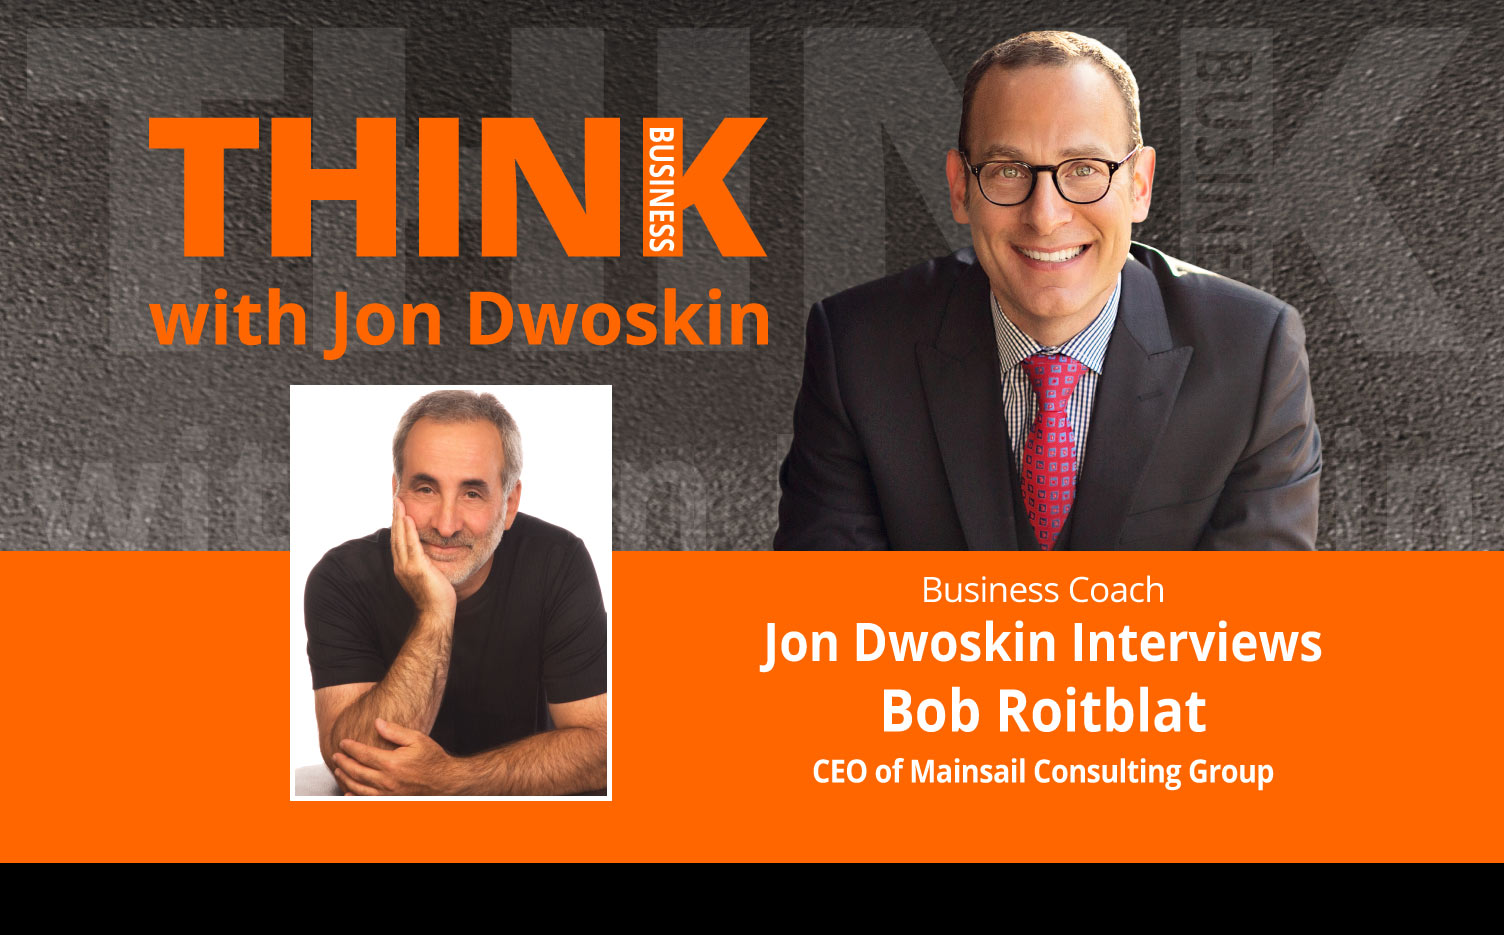 THINK Business Podcast: Jon Dwoskin Interviews Bob Roitblat, CEO of Mainsail Consulting Group